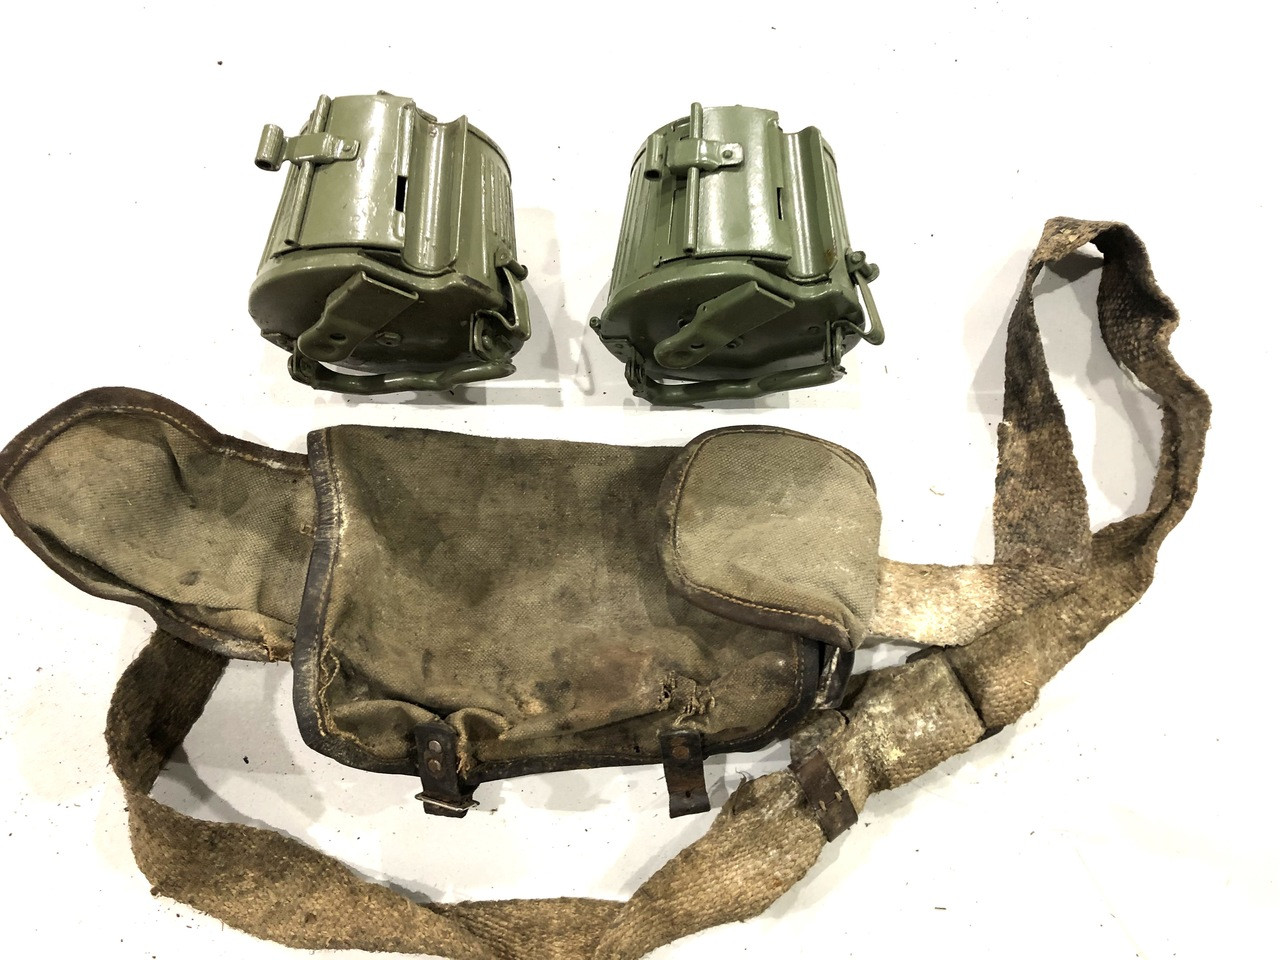 2x MG34/42 Basket Drums (Yugo/Good Condition) with low grade carrying case